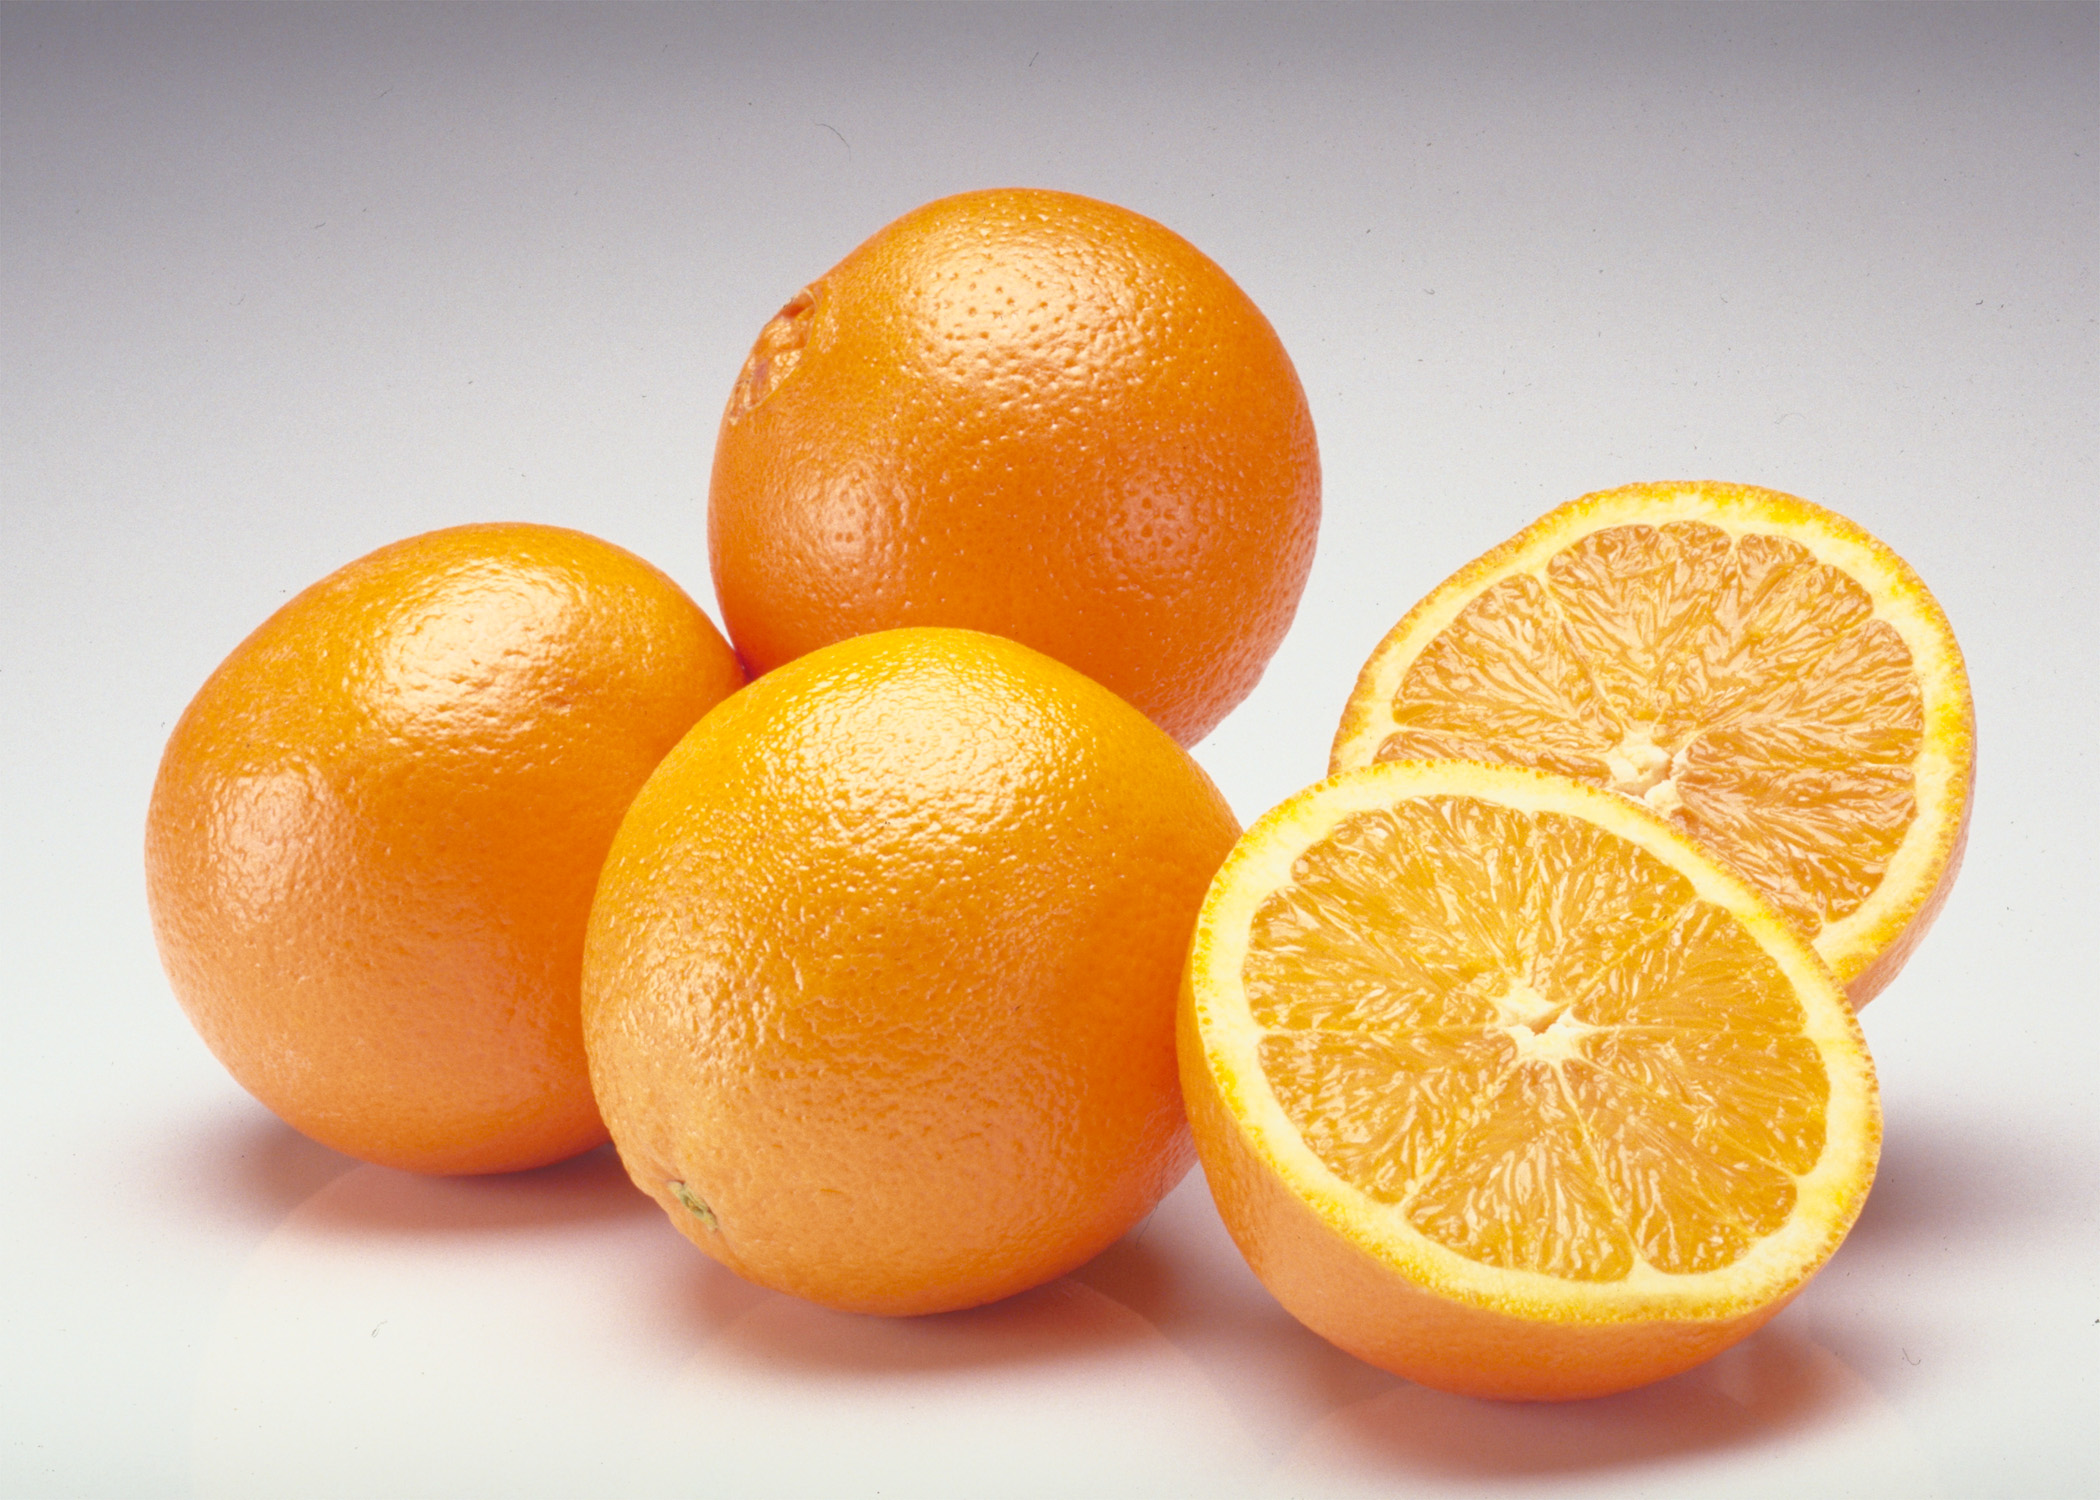 Top 13 Health Benefits of Oranges: No Wonder They're So Popular!